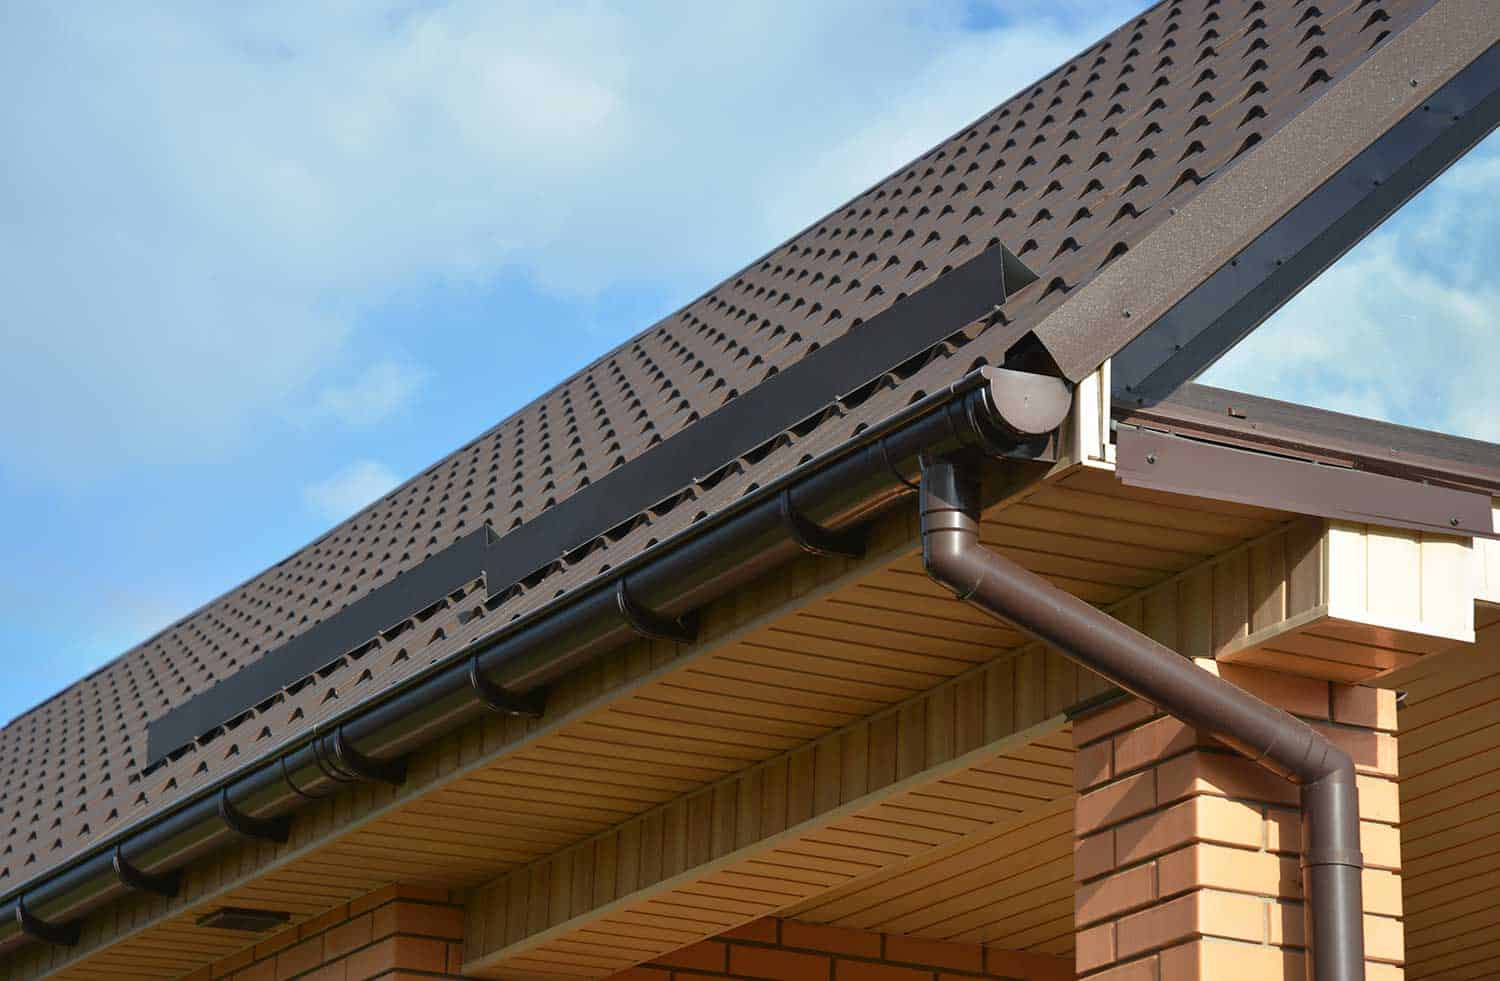 Modern house construction with metal roof corner, rain gutter system and roof protection from snow board